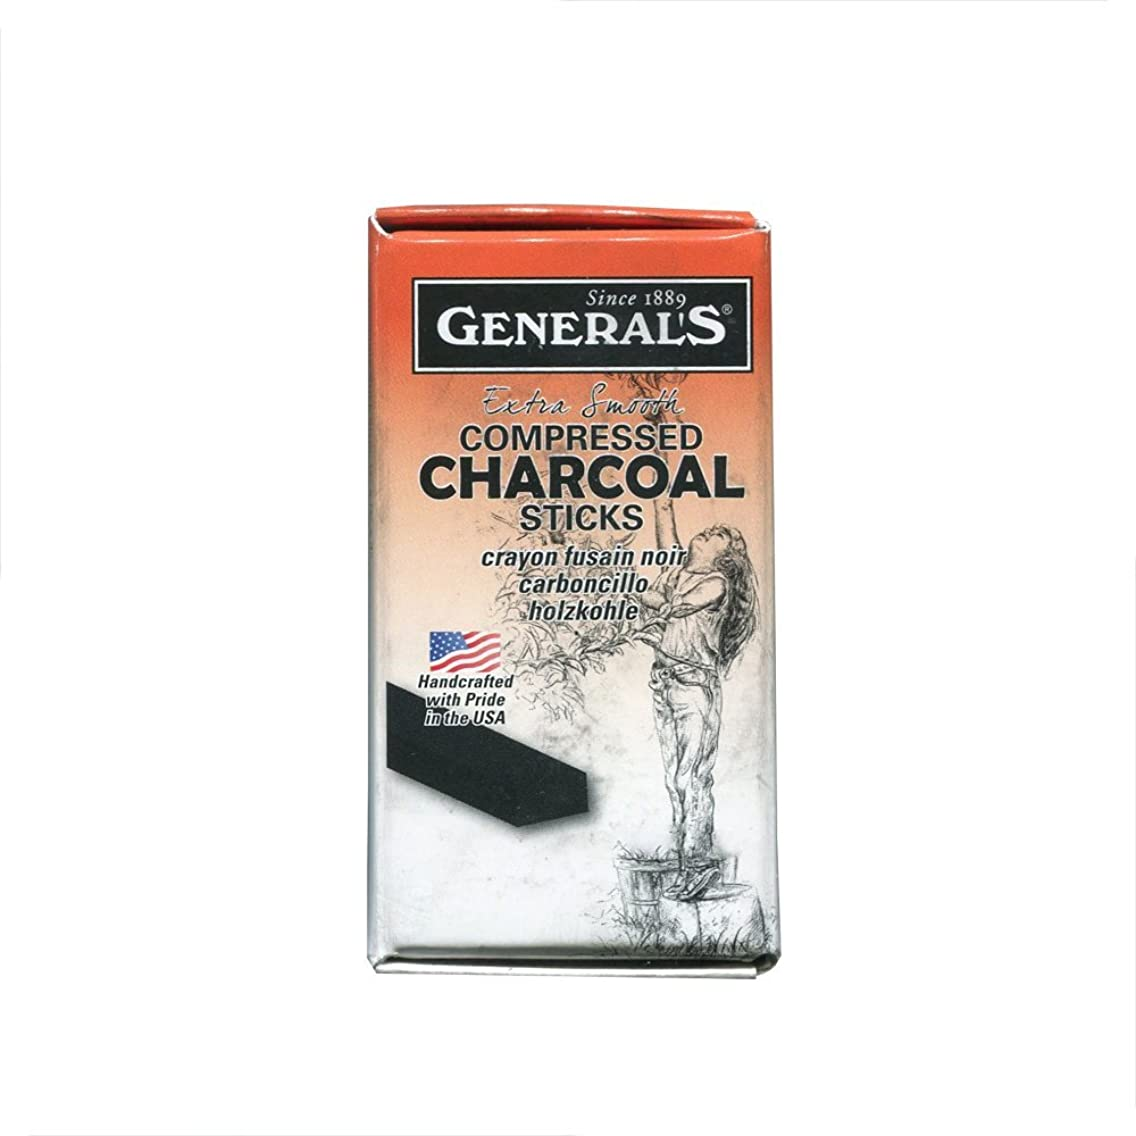 General Compressed Charcoal Stick 4B 6/Box